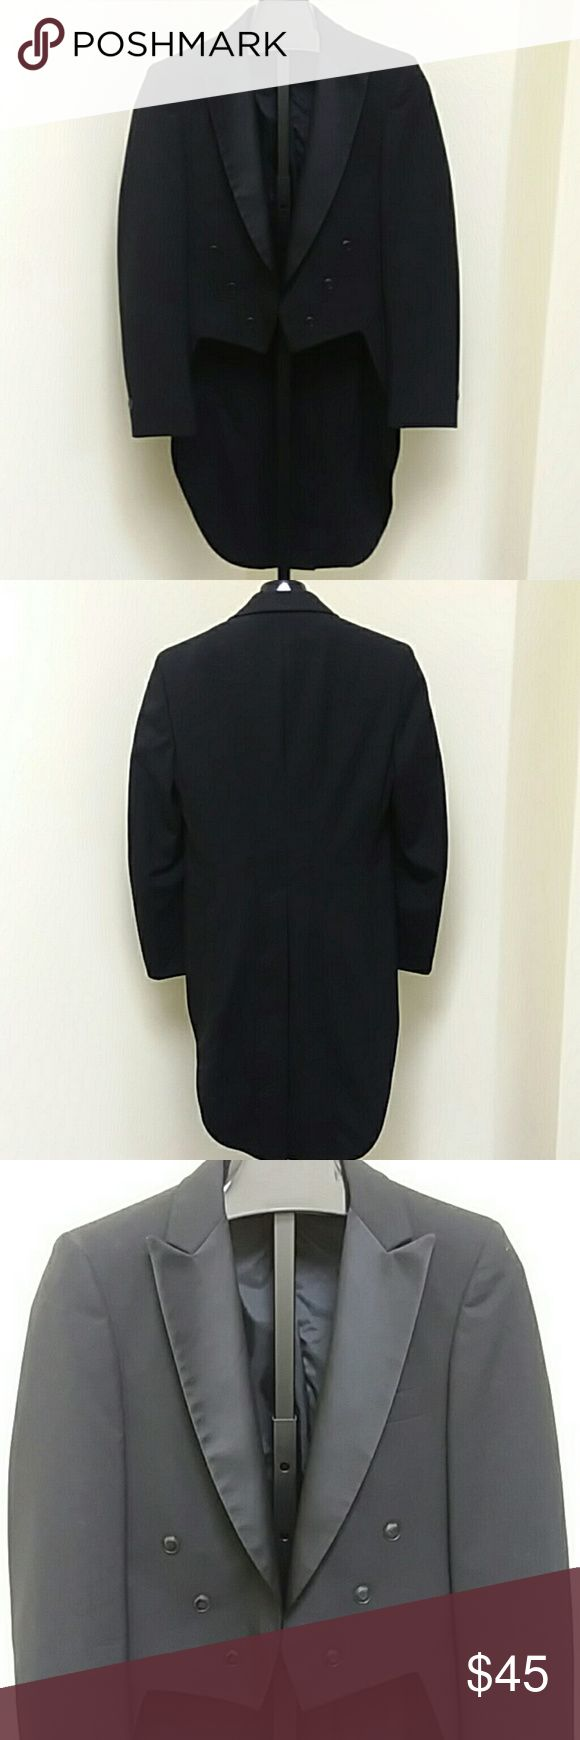 AFTER SIX Peak Lapel Tuxedo Jacket with Tails VTG peak style, tuxedo jacket with tails, with black lining. Plastic buttons. 100% wool. From rental stock at a tuxedo store, has been dry cleaned and ready to wear. After Six Suits & Blazers Tuxedos